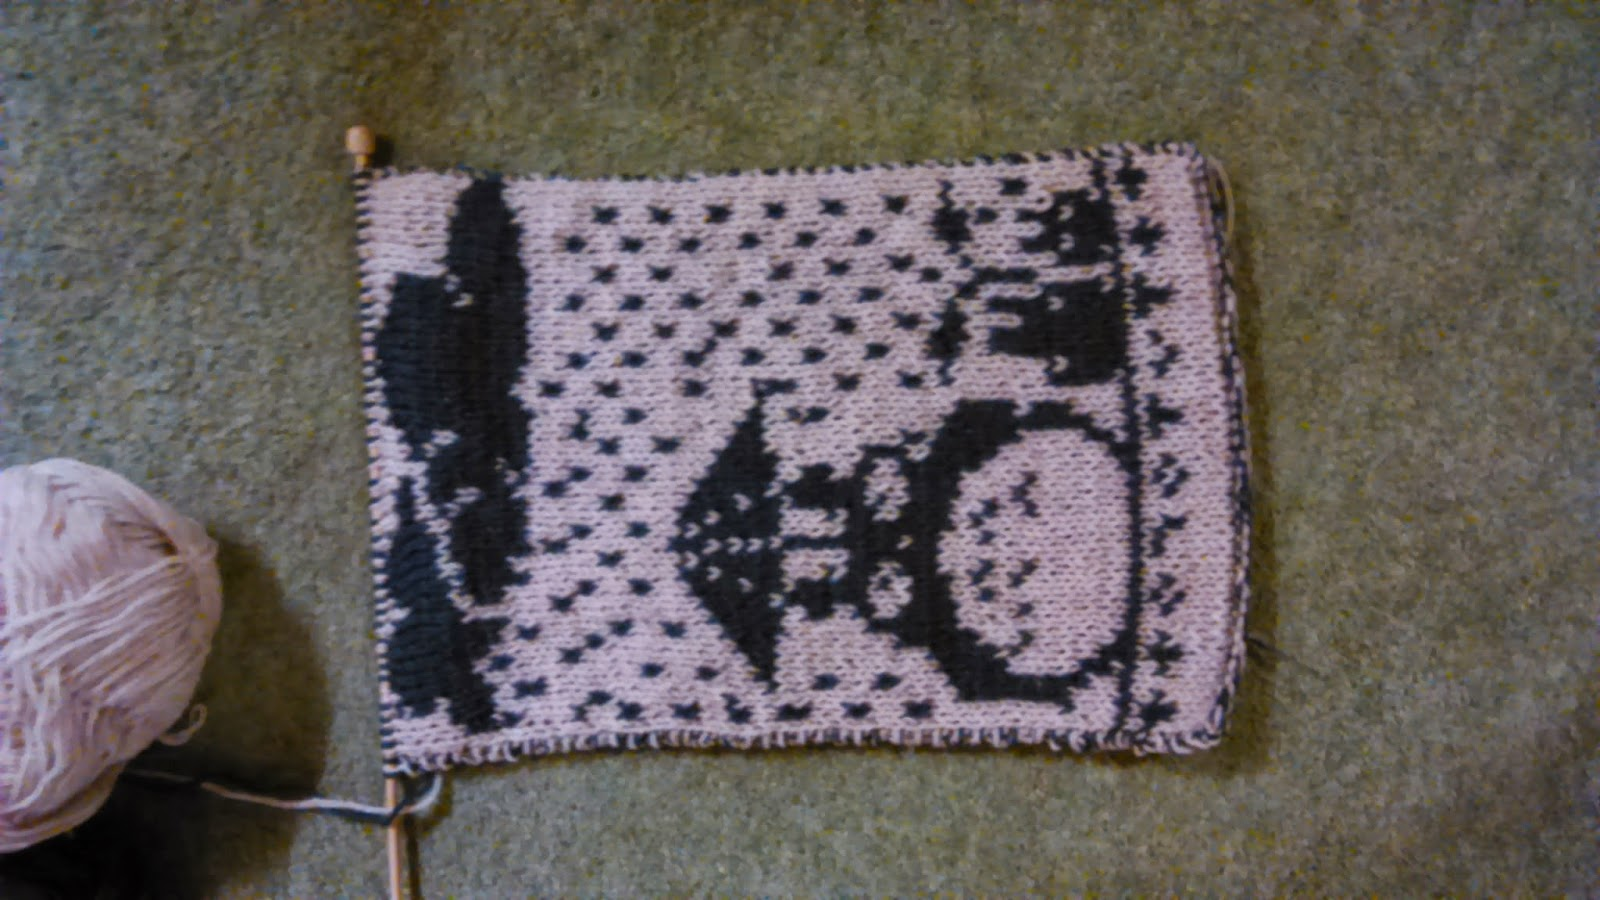 My Adventures In Knitting Double Knitting Totoro Scarf